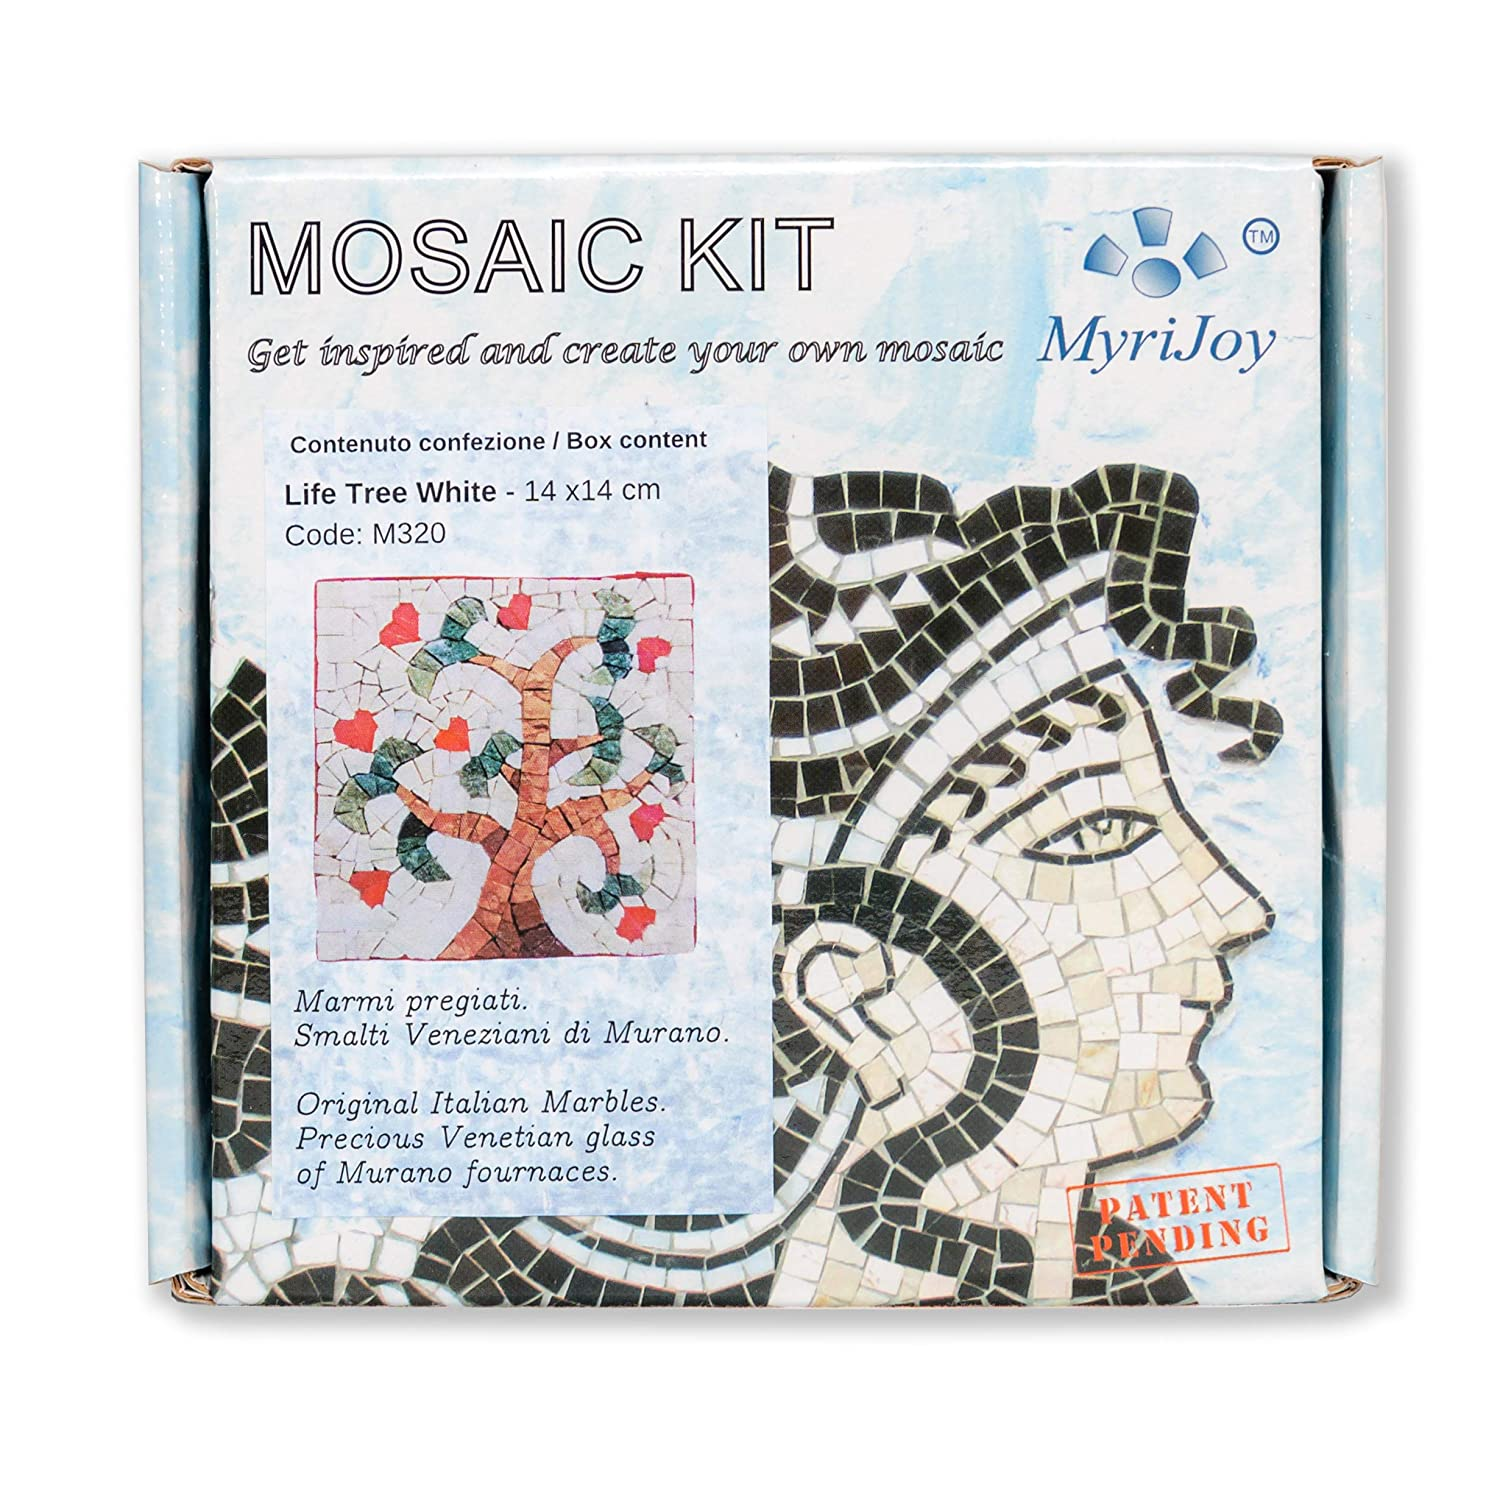 DIY Craft Kit Italian Marbles and Venice Murano glass tiles Mosaic Kit for Adults Creative Hobby Original Gift Idea White Tree of Life MyriJoy